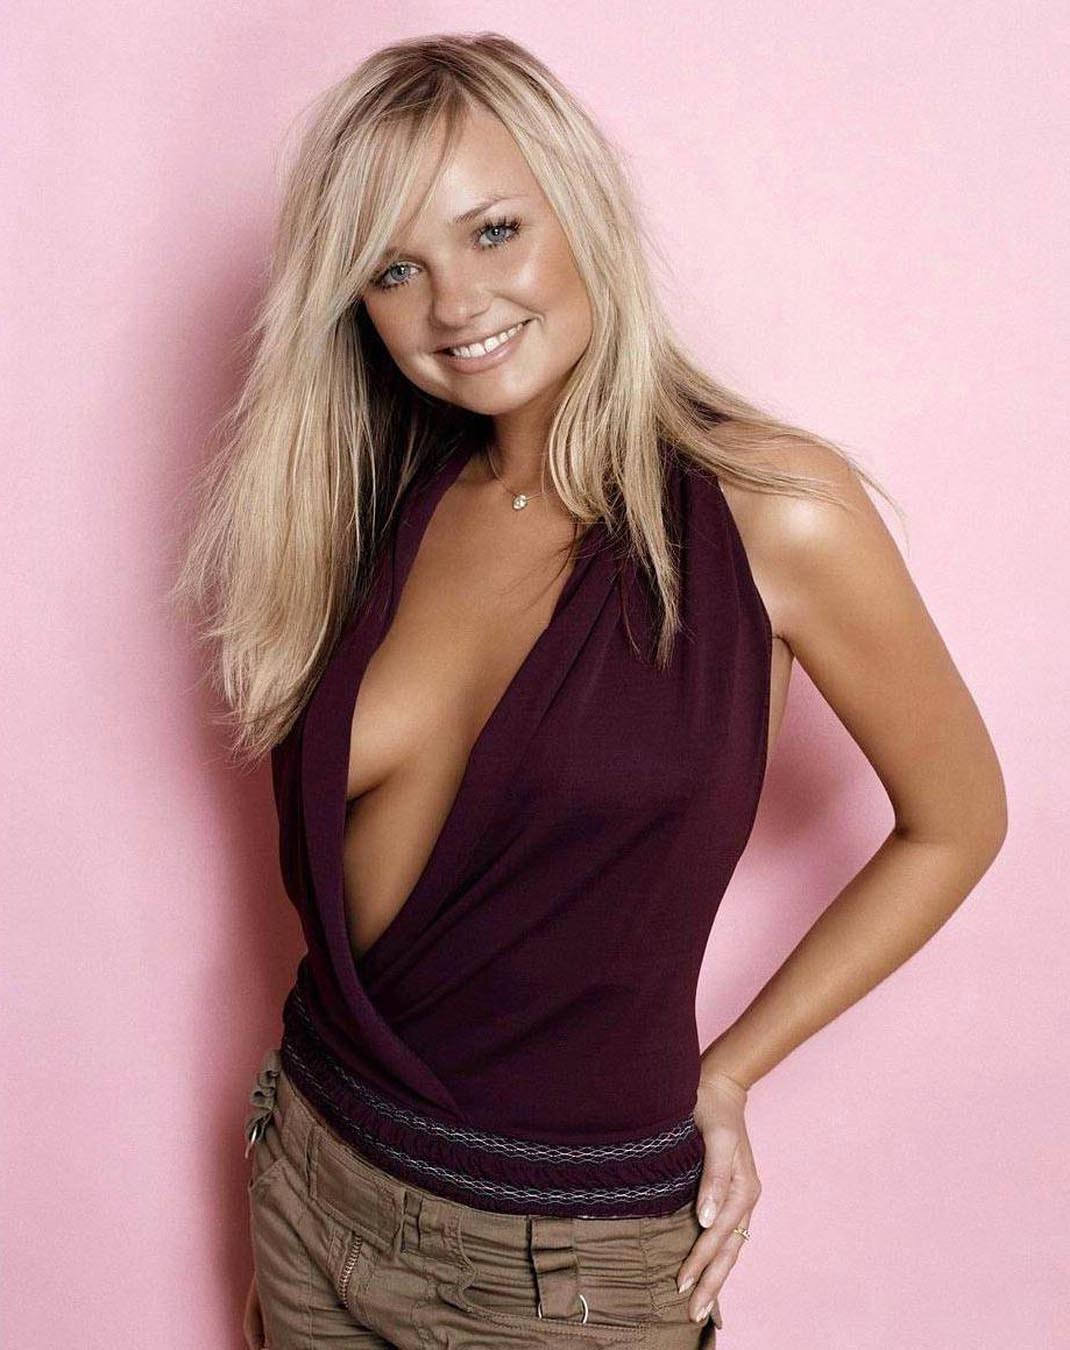 http://2.bp.blogspot.com/-c-g03vwQLlo/Tc_t5VFkWiI/AAAAAAAAC3g/VxxpyO7bNGA/s1600/Emma+Bunton+Photo+shoot+in+Purple+Top.jpg